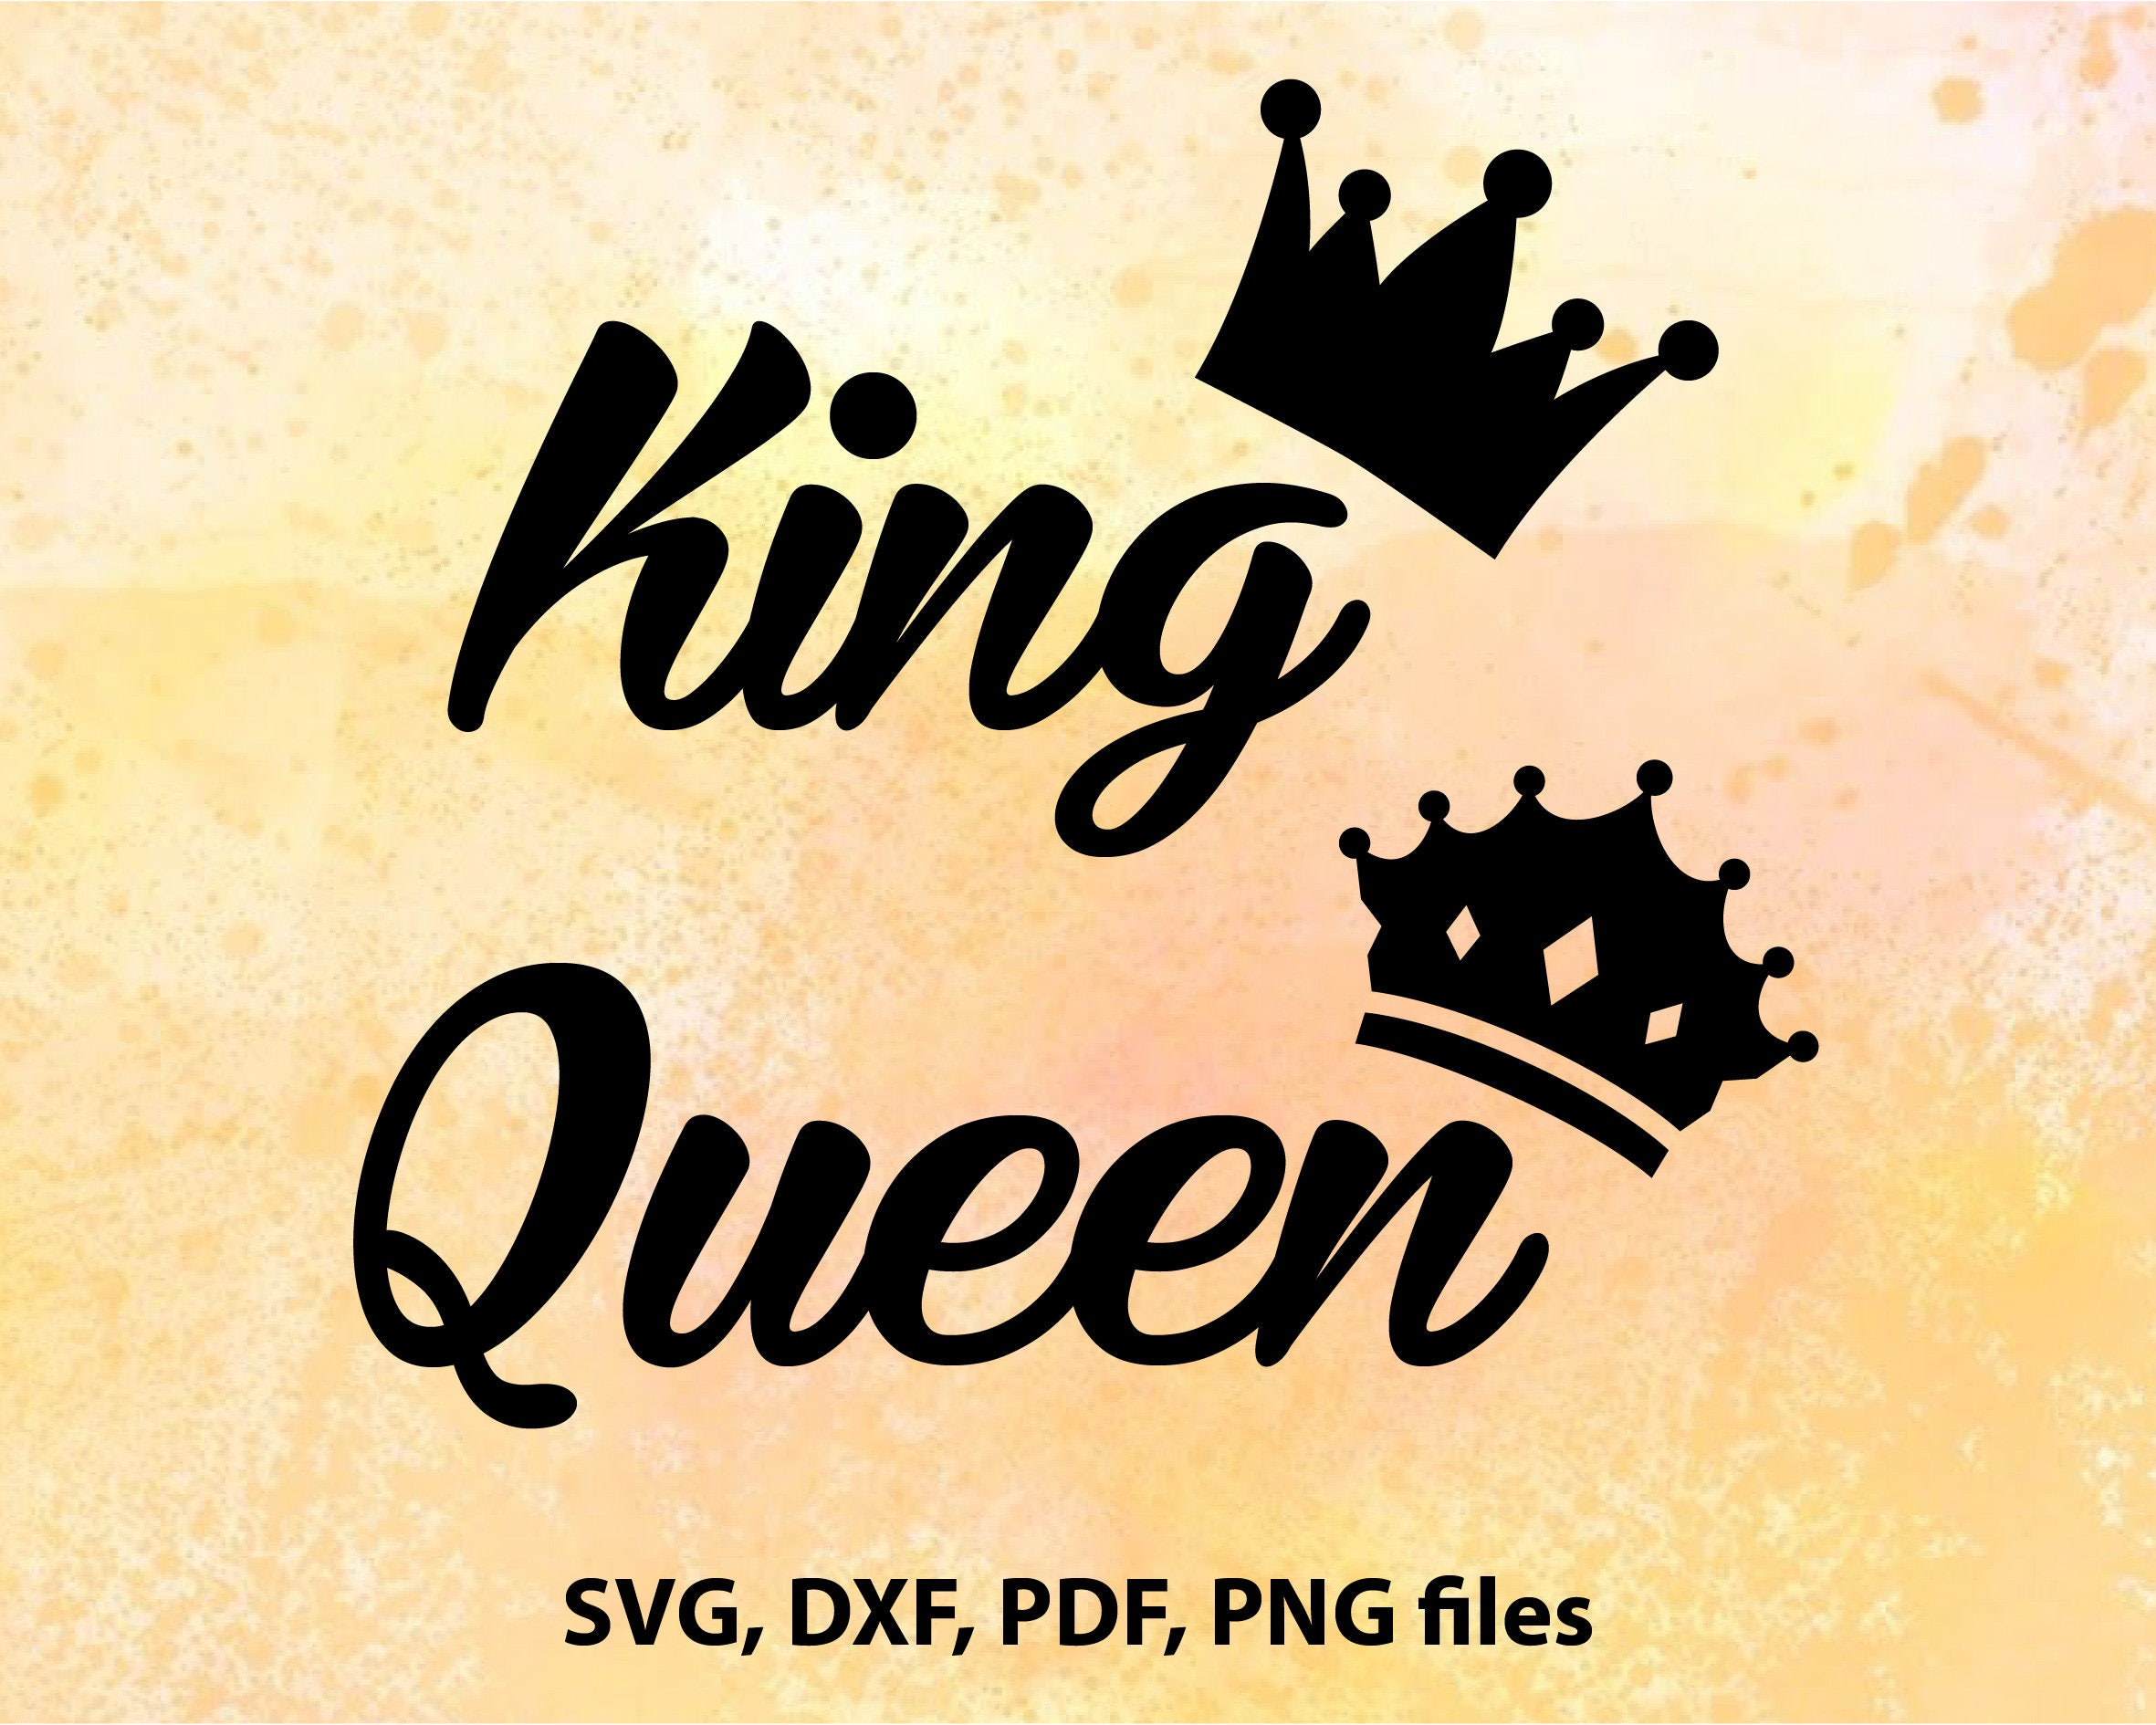 His Queen Her King Svg.Her King Svg Www Topsimages Com